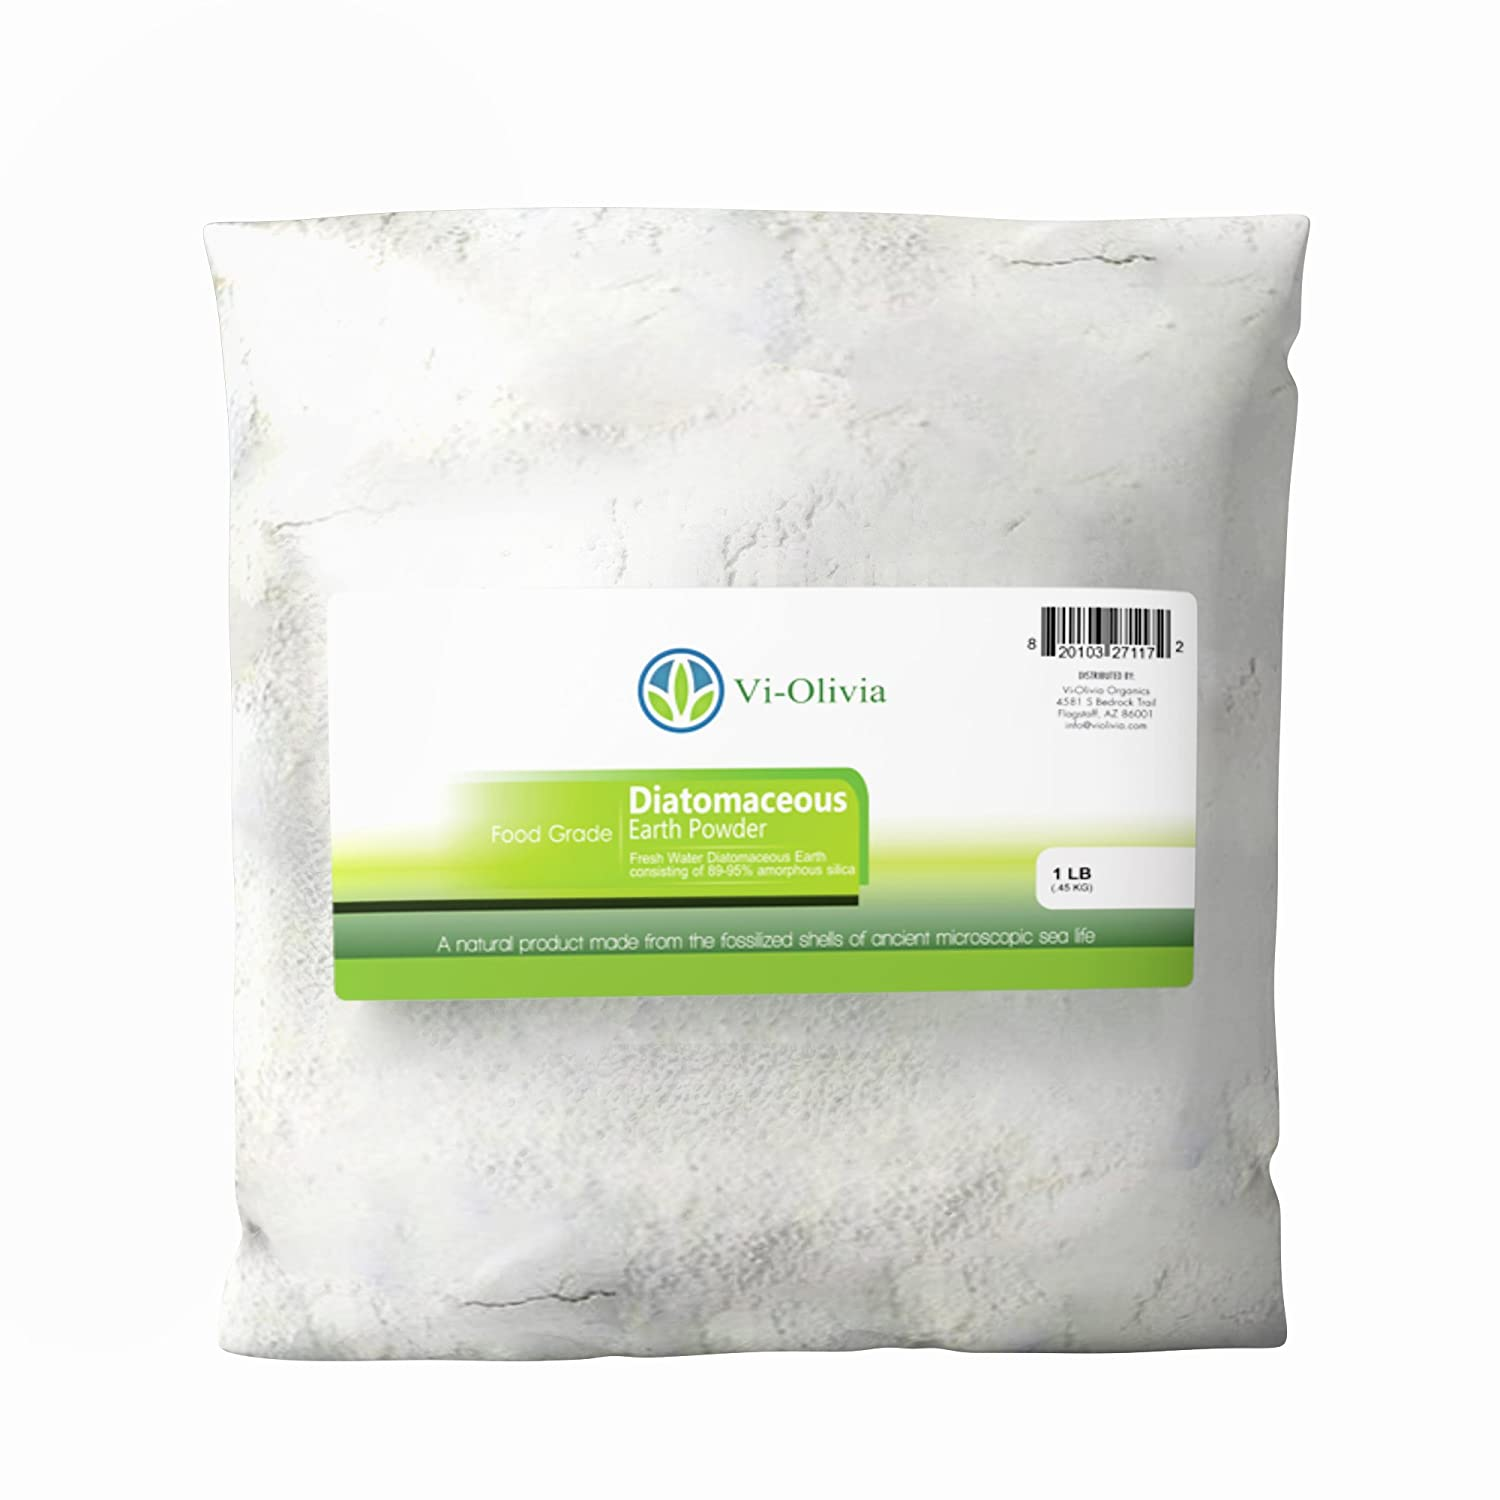 Food Grade Diatomaceous Earth - Non-Toxic Organic, Powder-Safe for Humans, Dogs and Cats